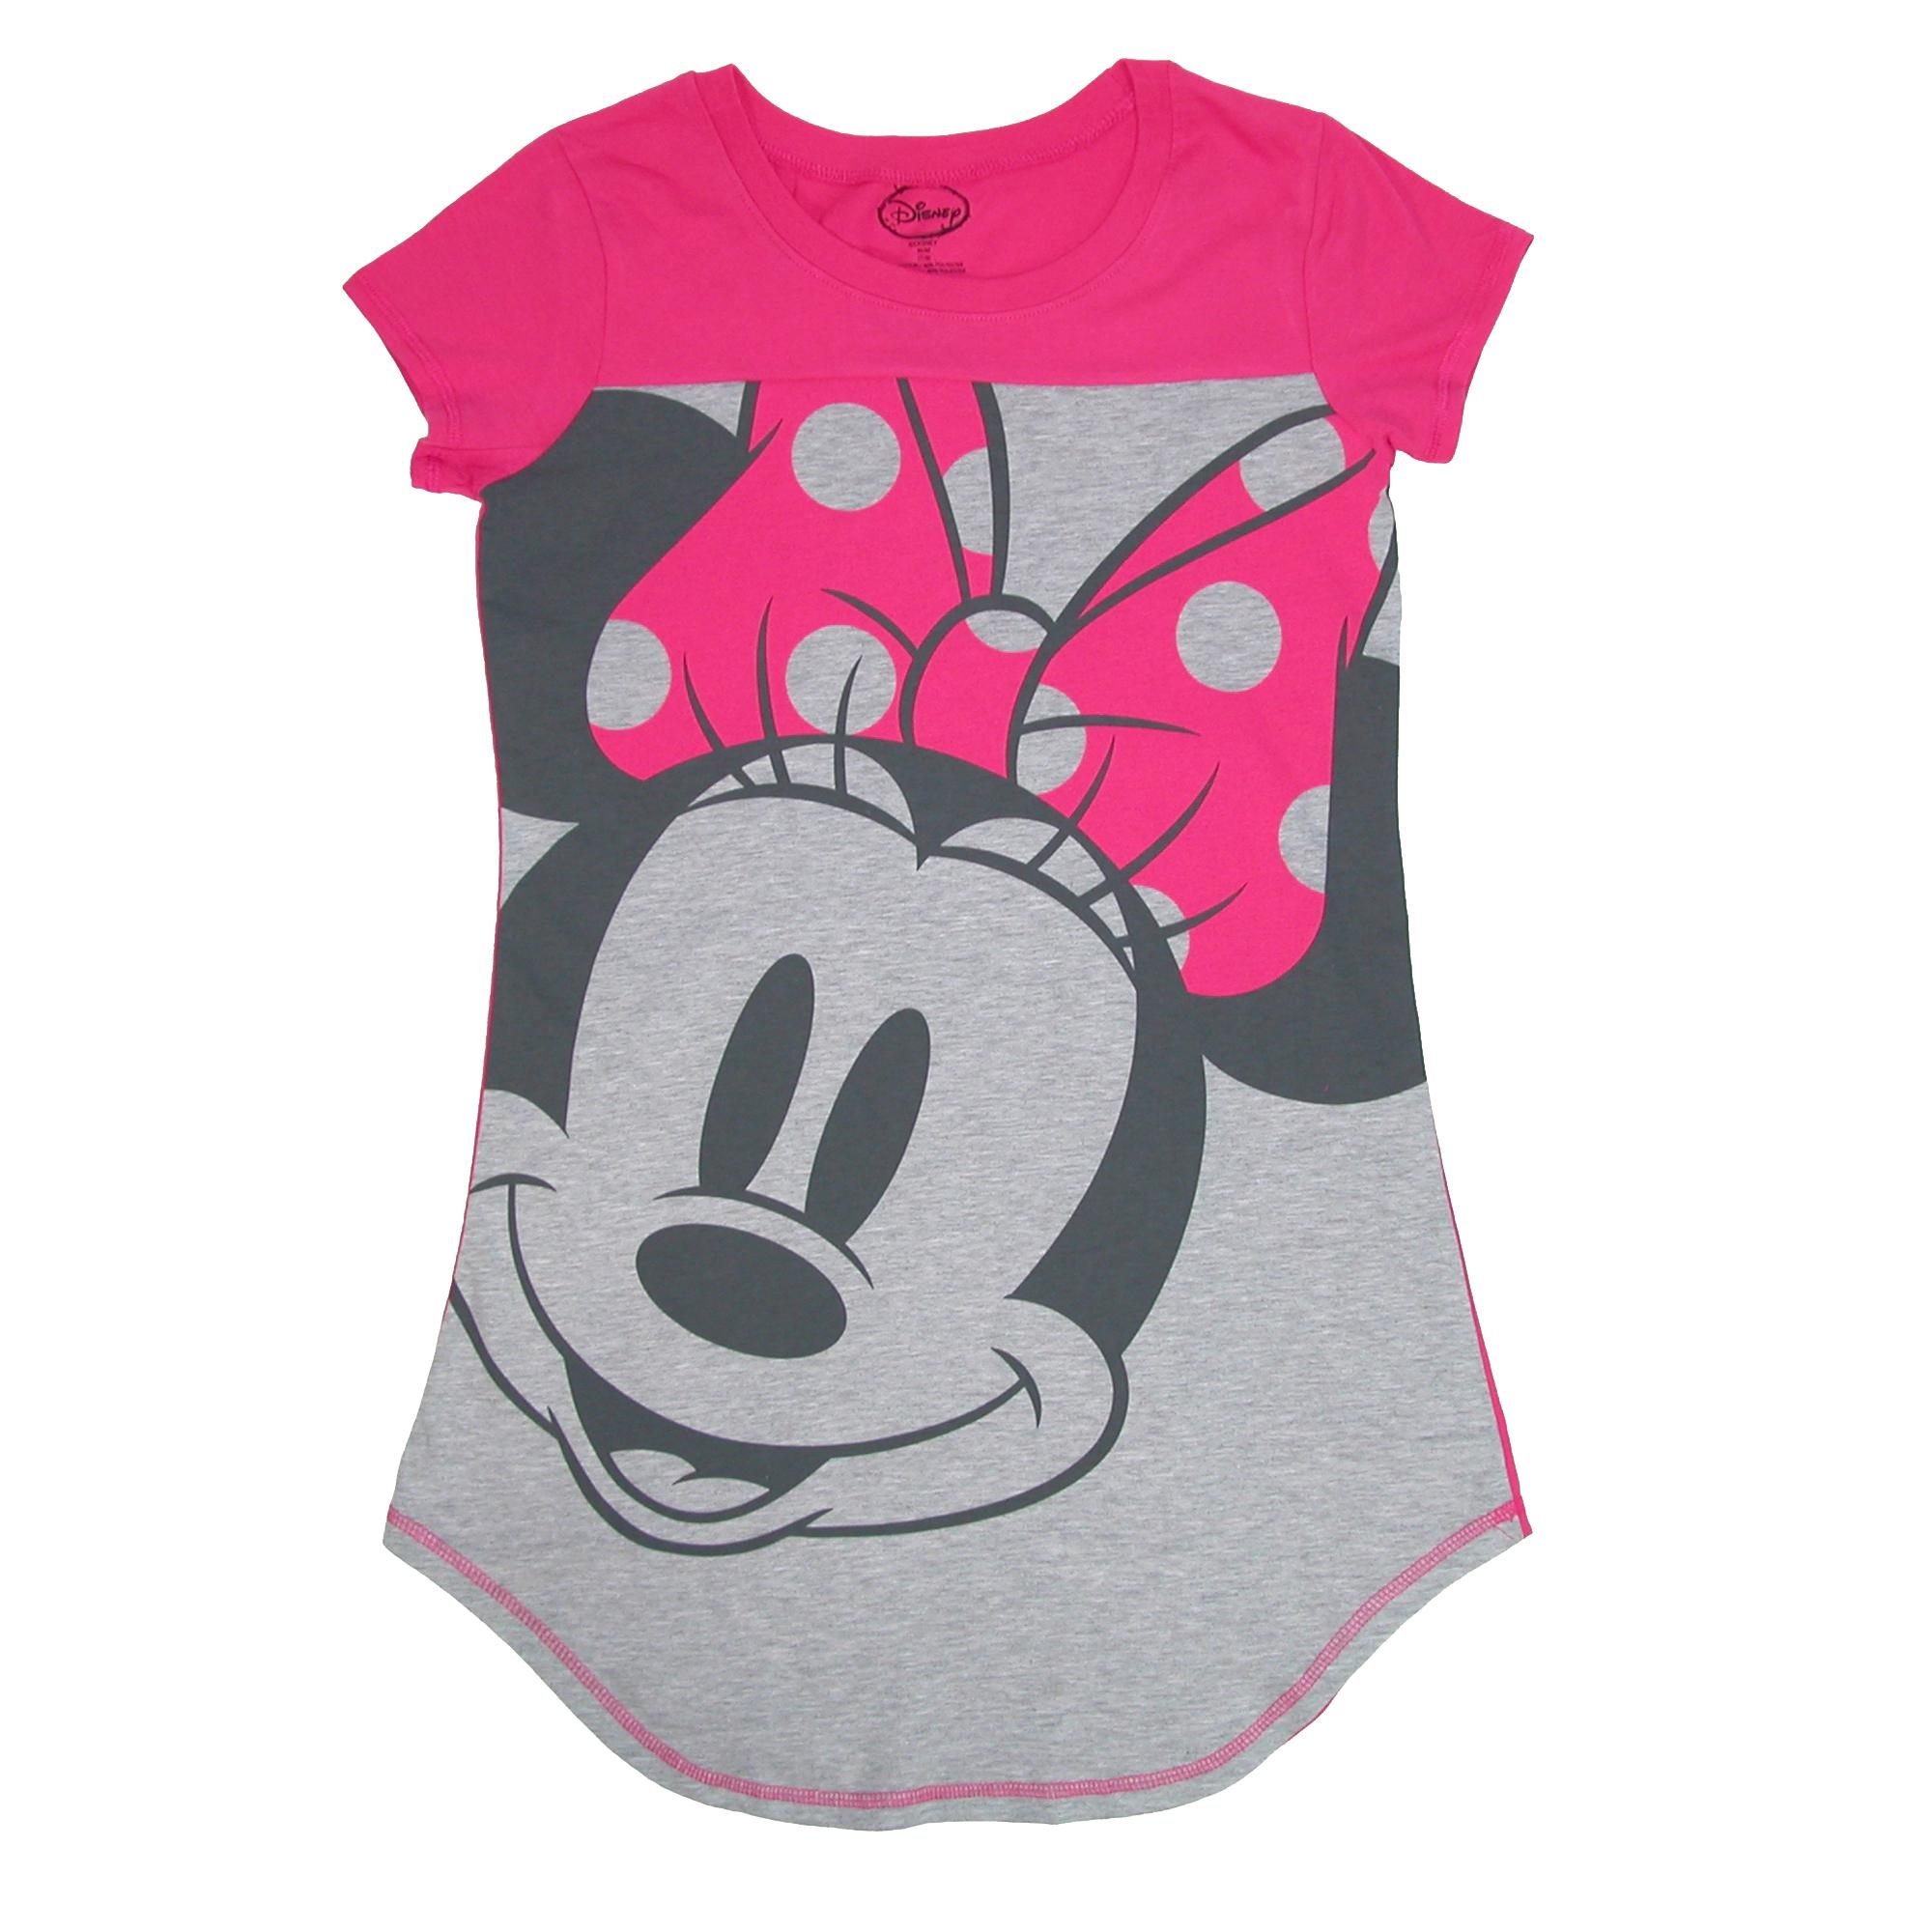 new disney minnie mouse sleep shirt nightgown ebay